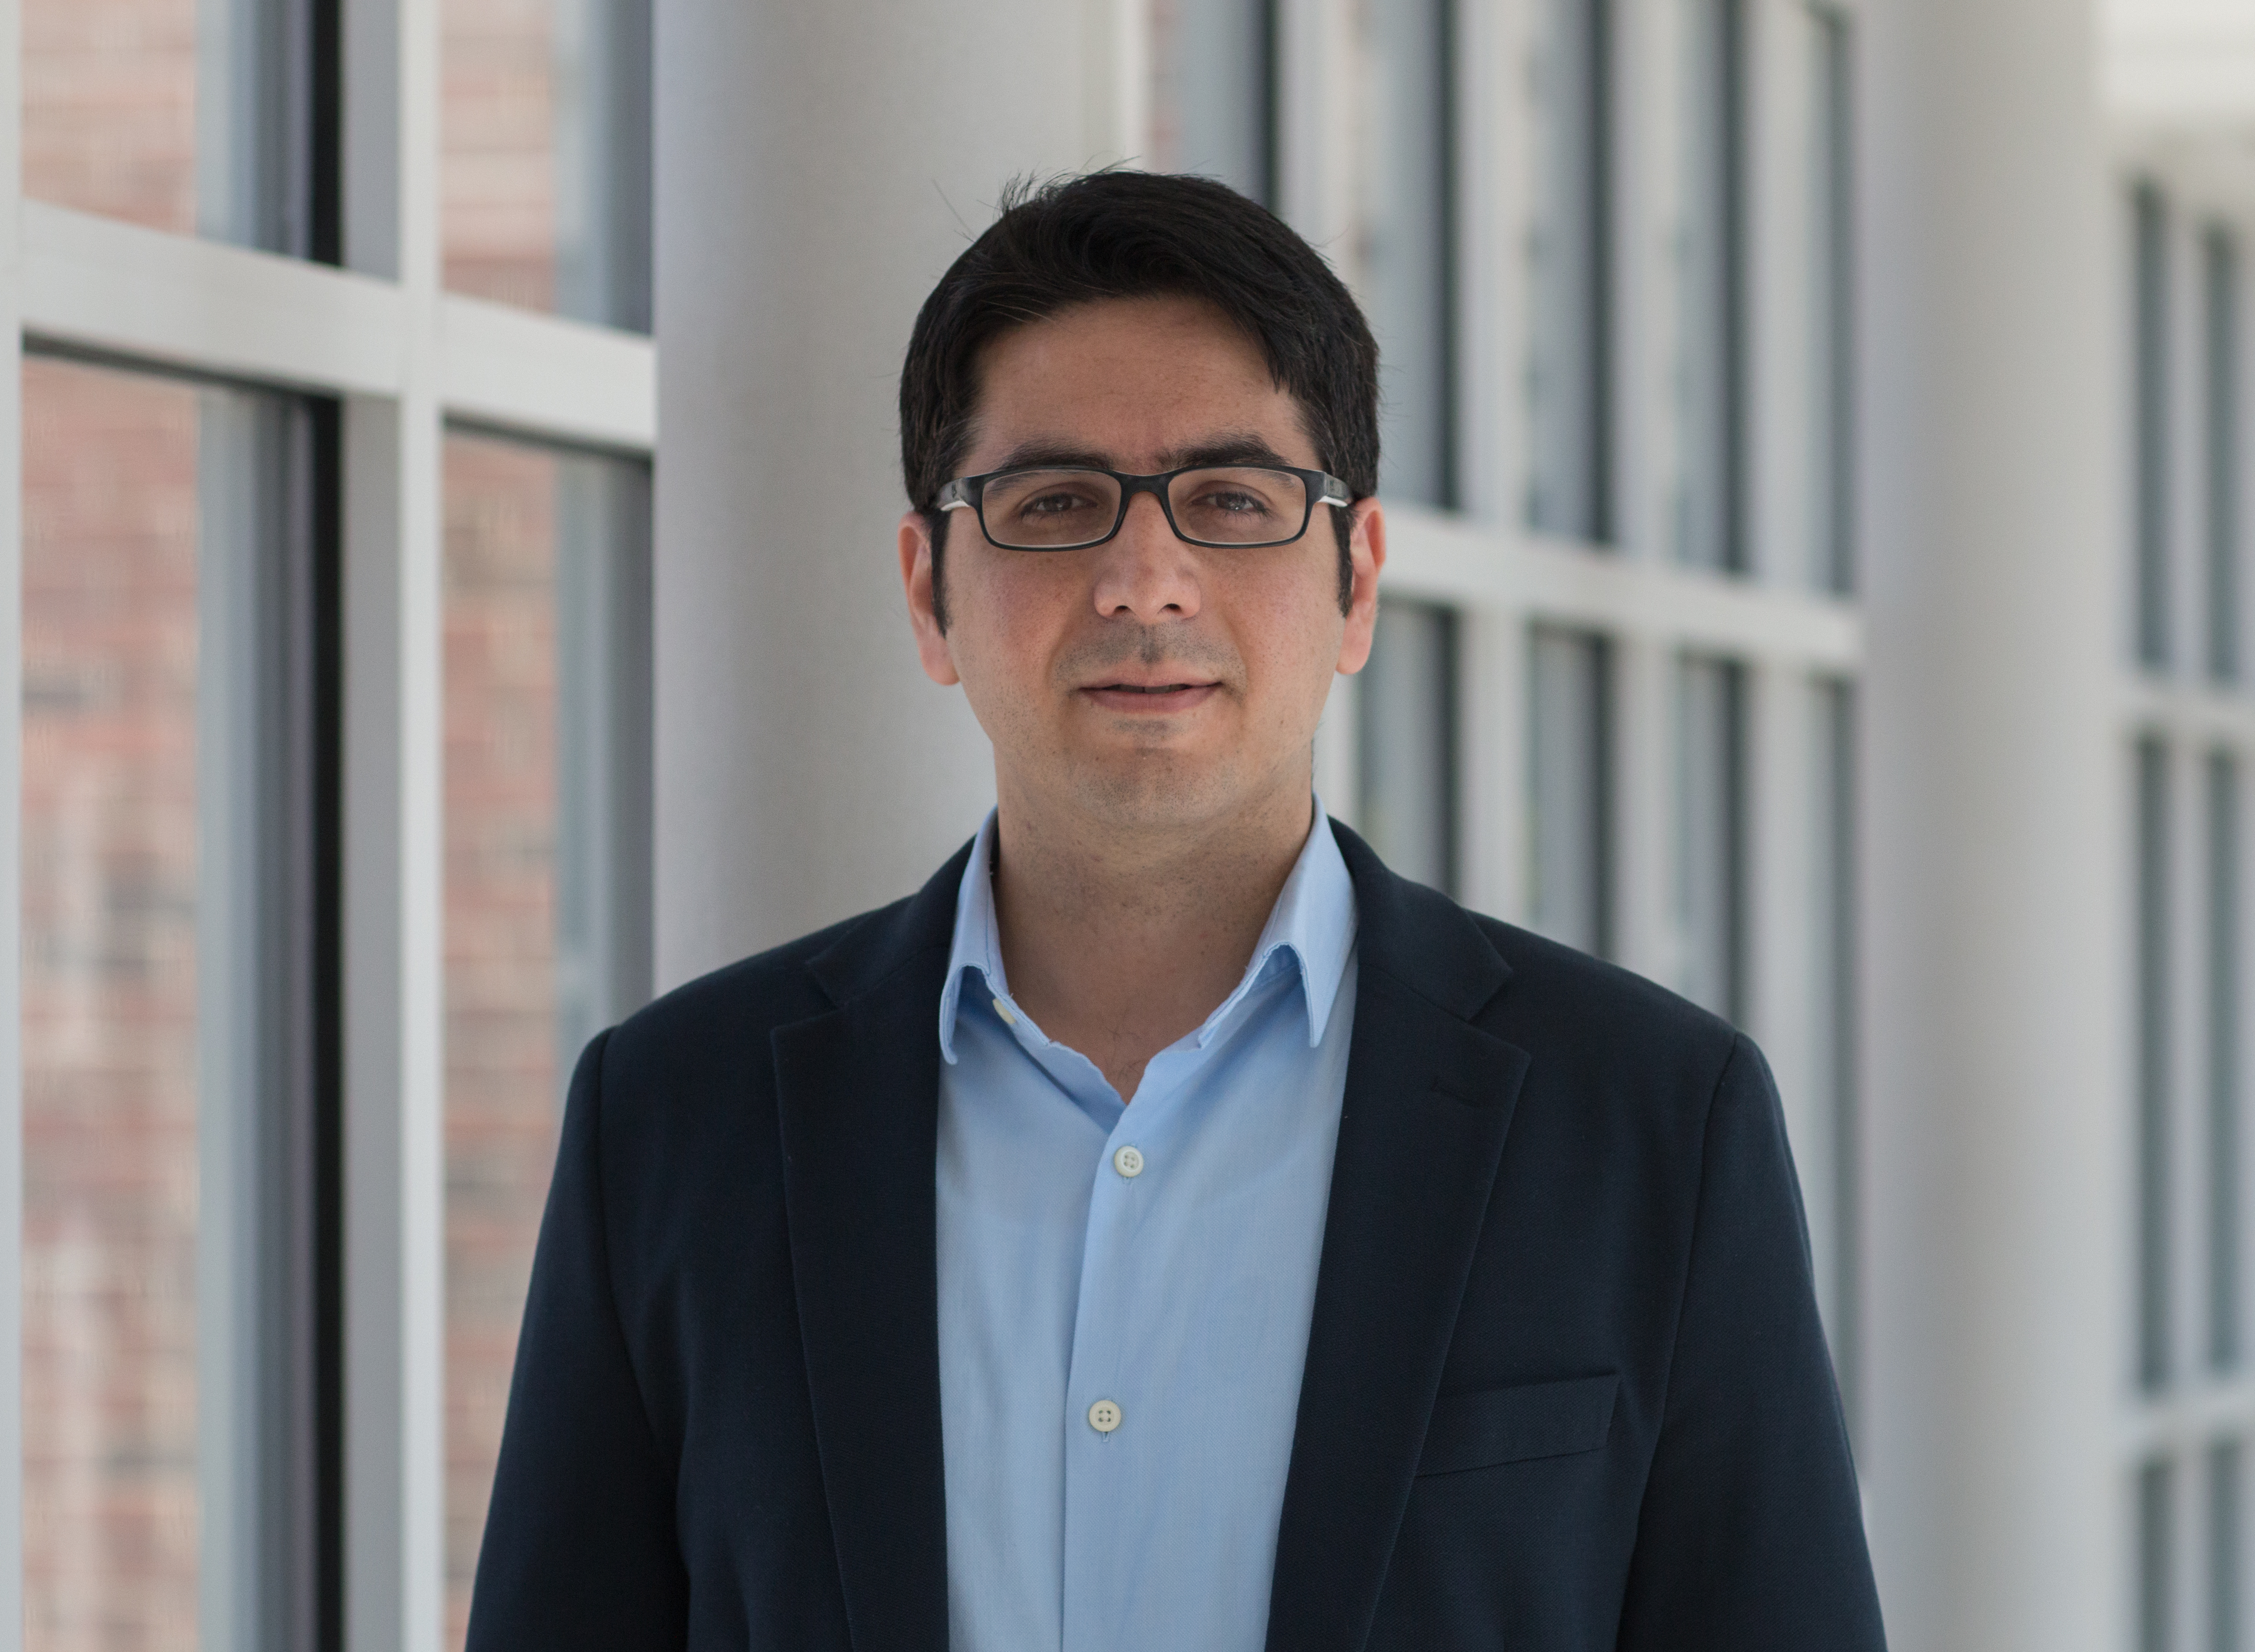 Descriptive image for Department welcomes Soheil Feizi as an assistant professor